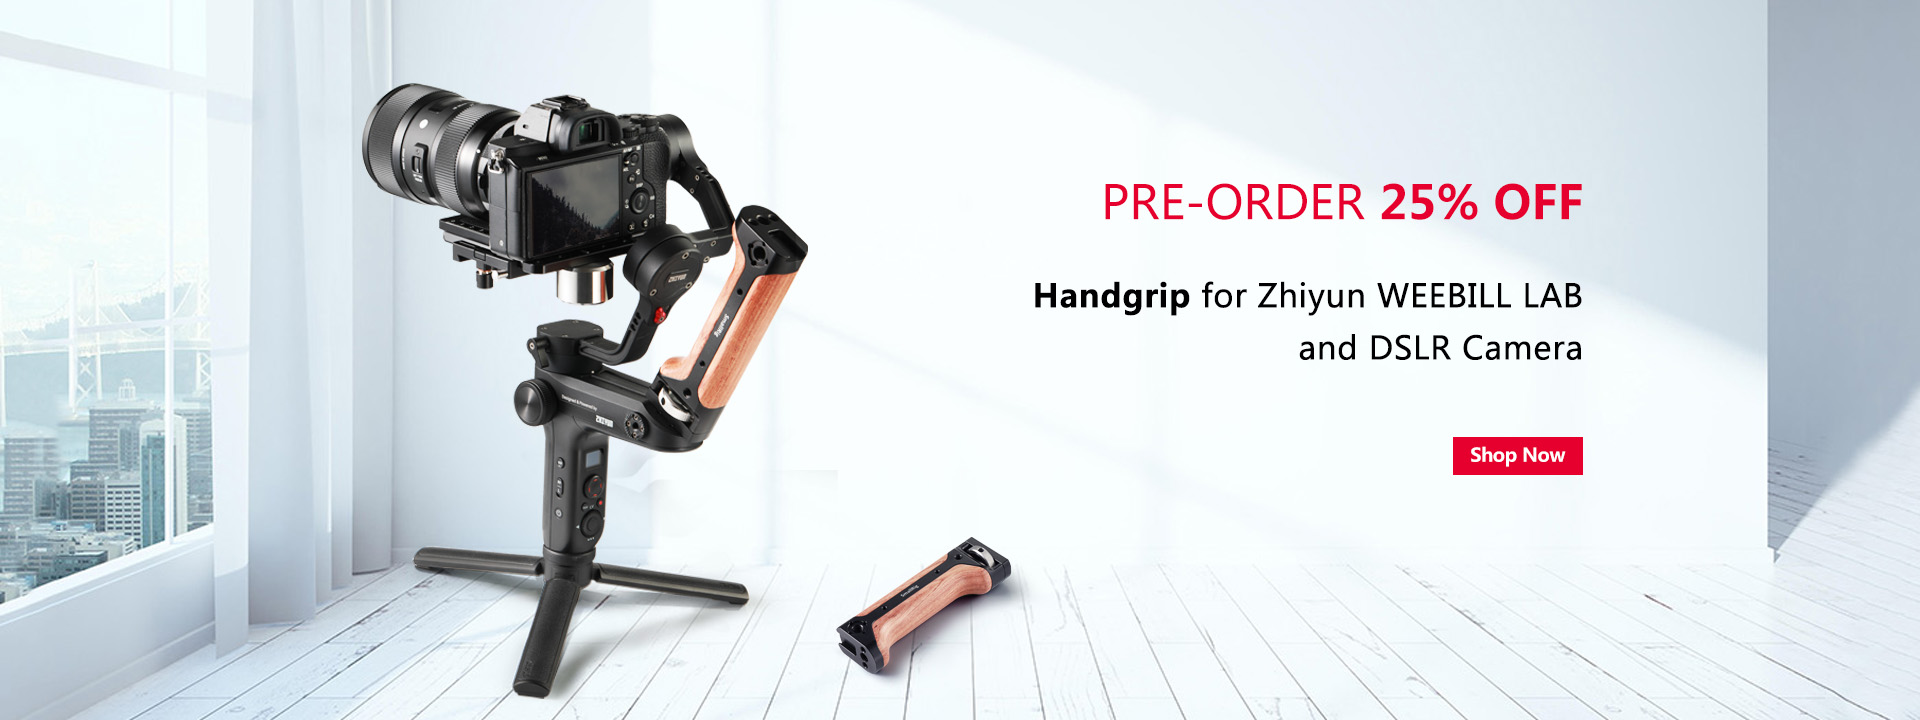 handgrip for zhiyun